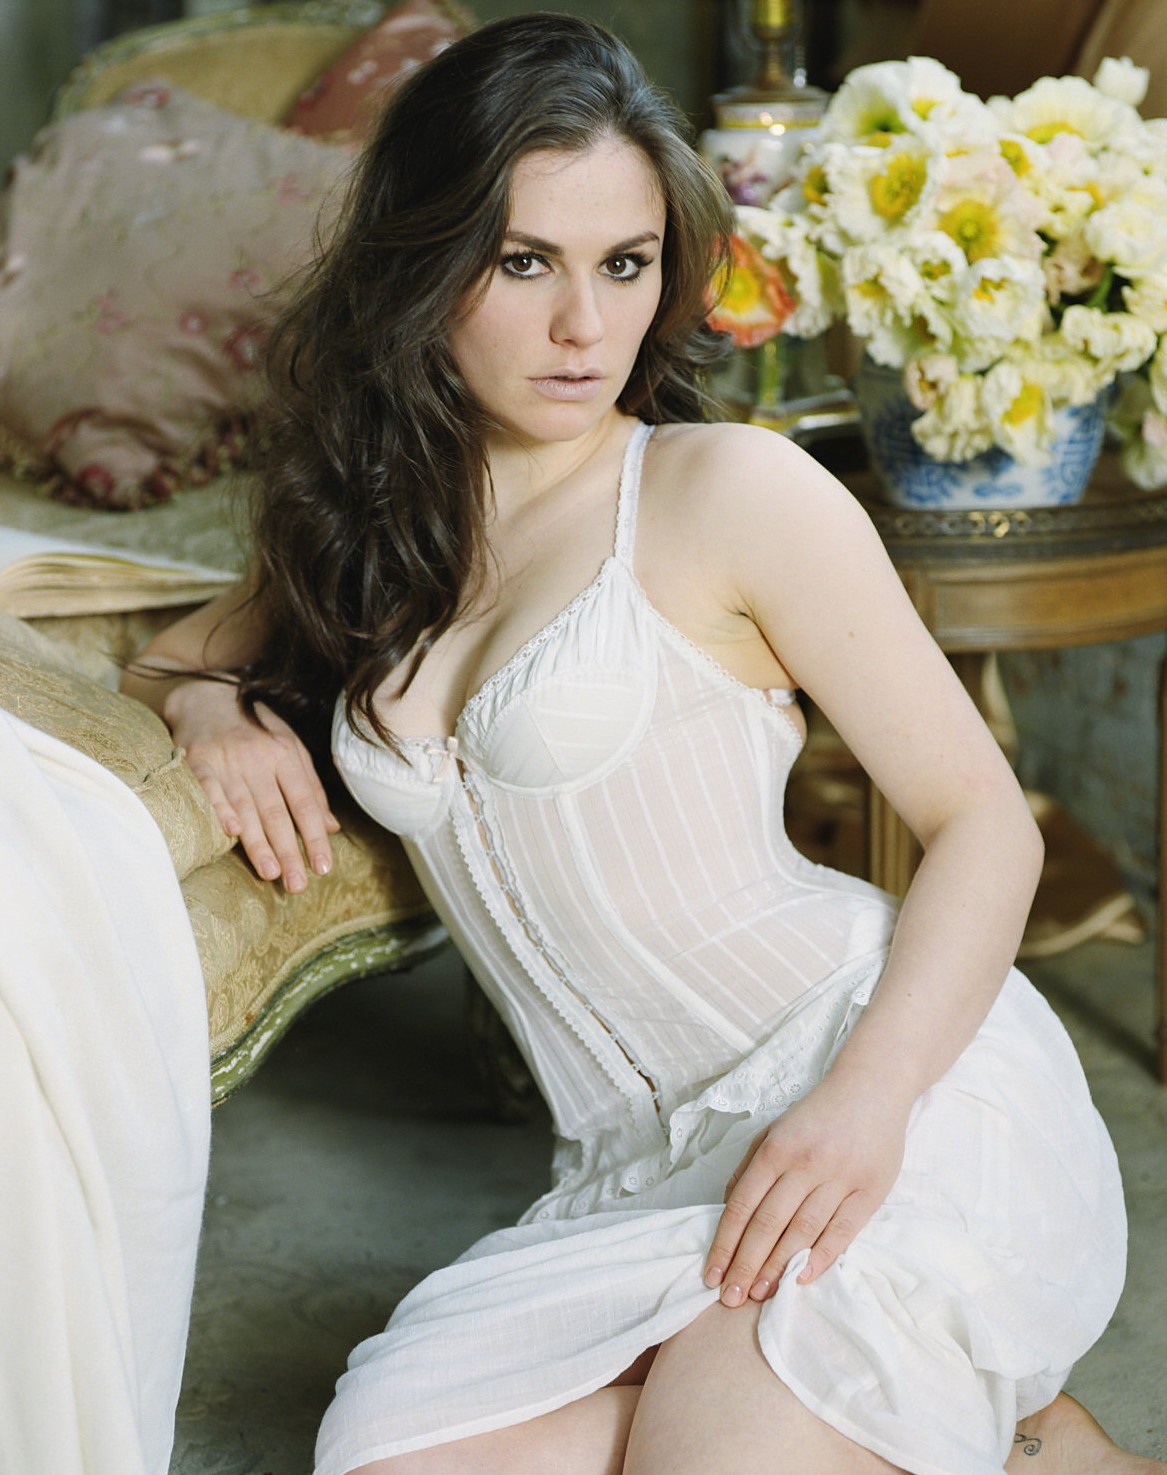 Ass Anna Paquin nudes (39 photos), Tits, Leaked, Selfie, braless 2017